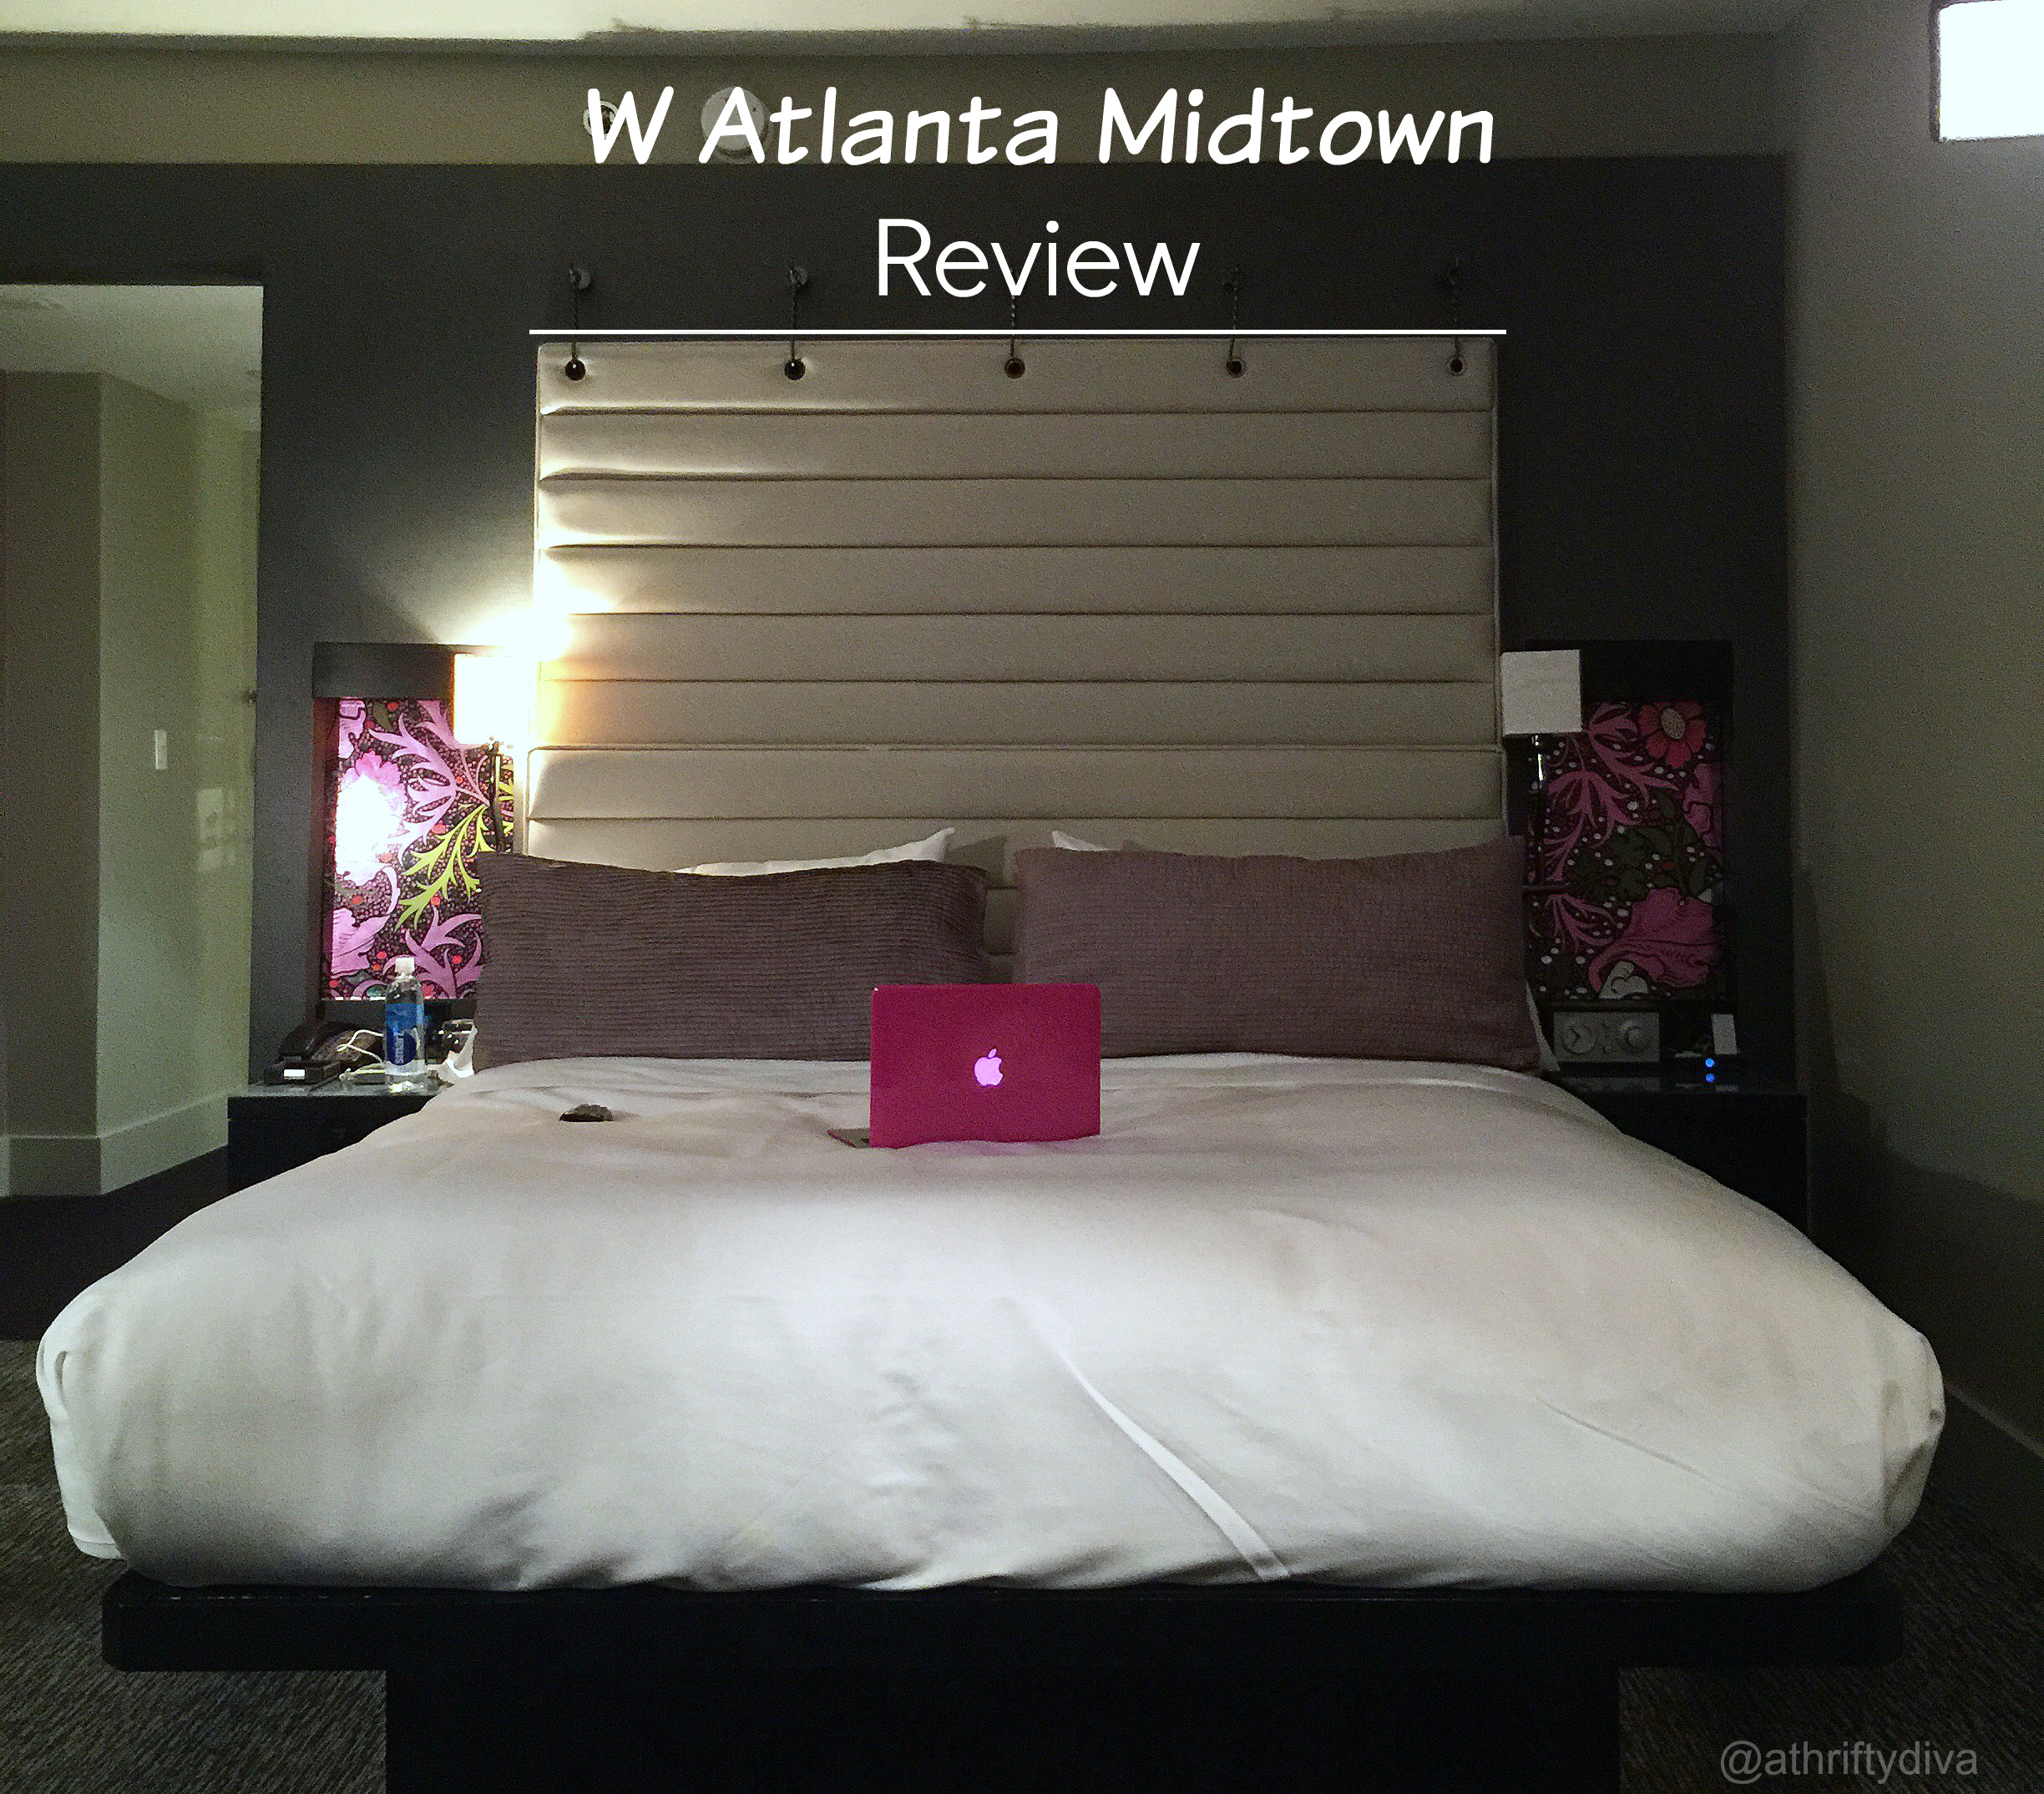 w atlanta midtown hotel review